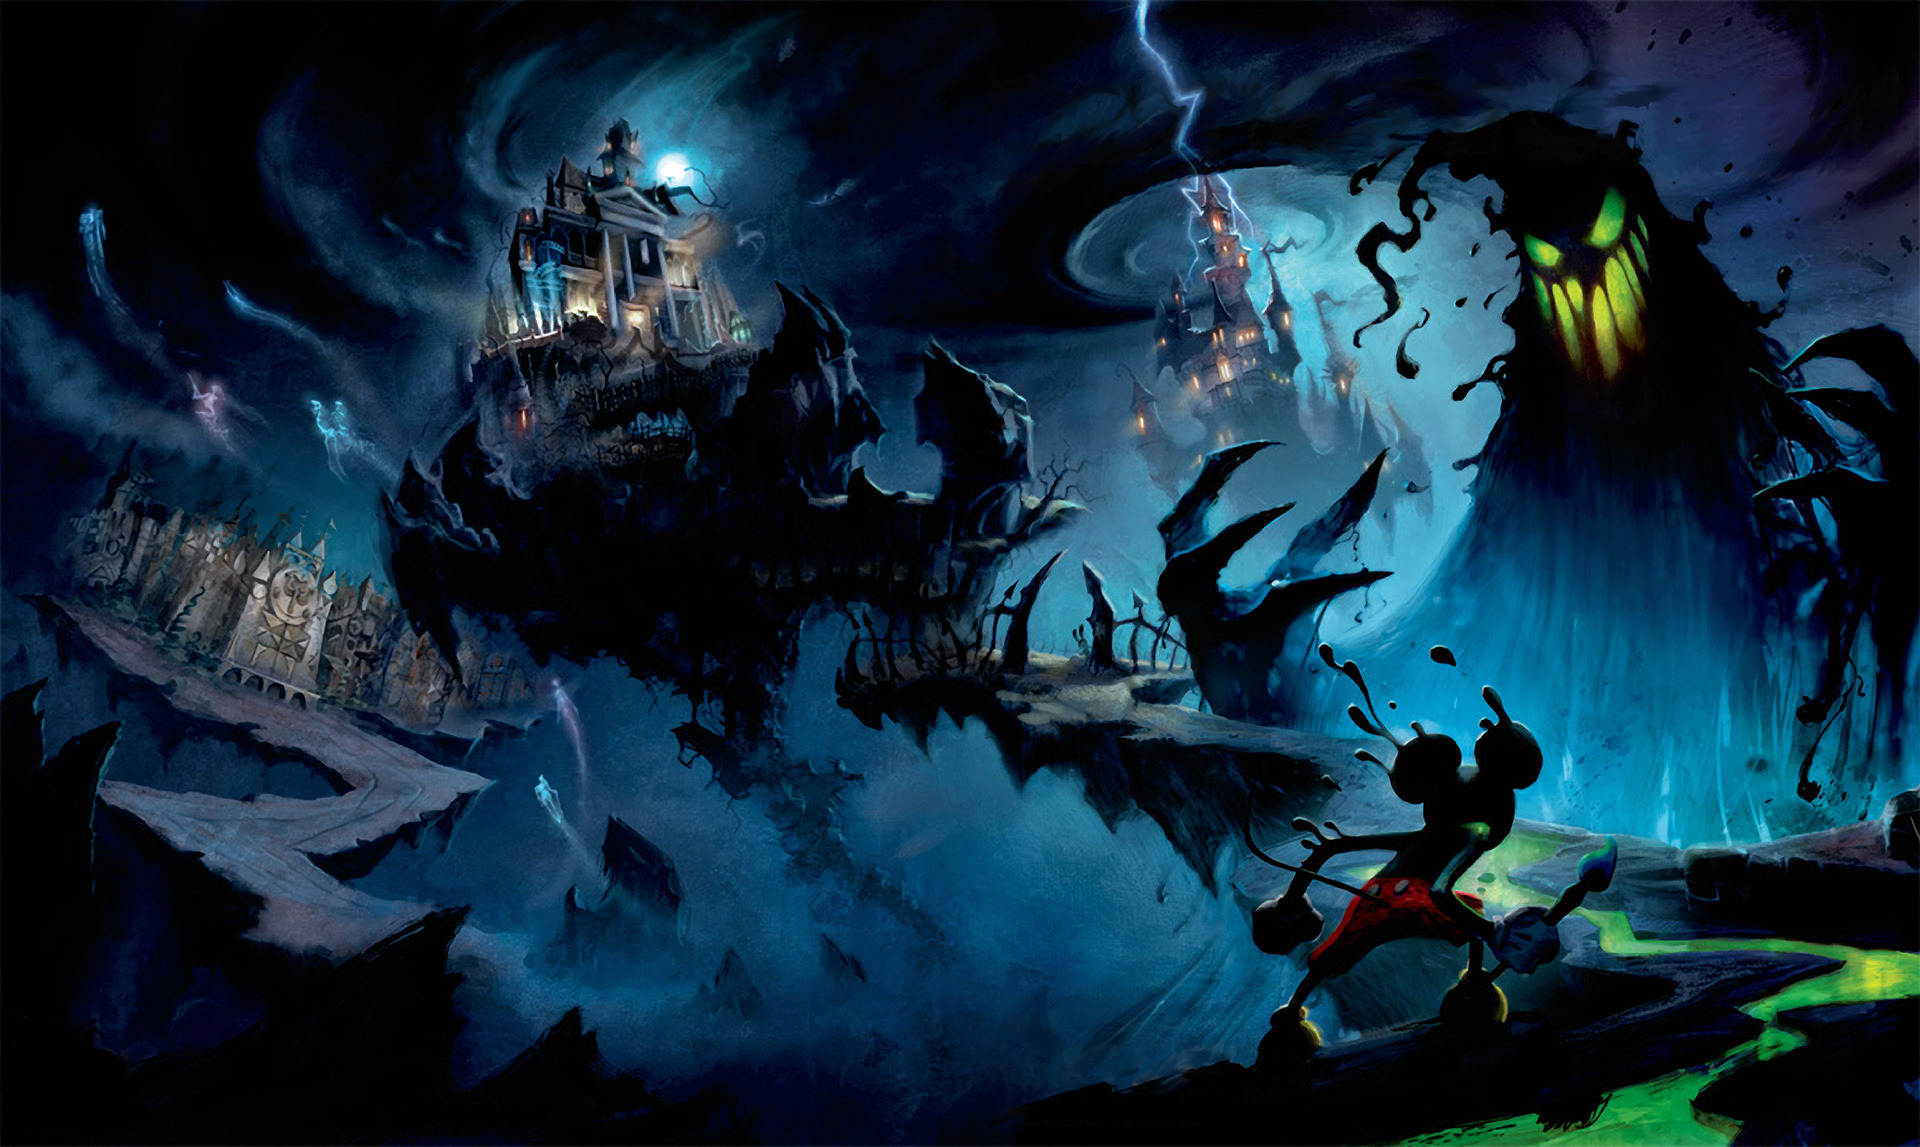 epic mickey wallpaper Download erotic wallpapers